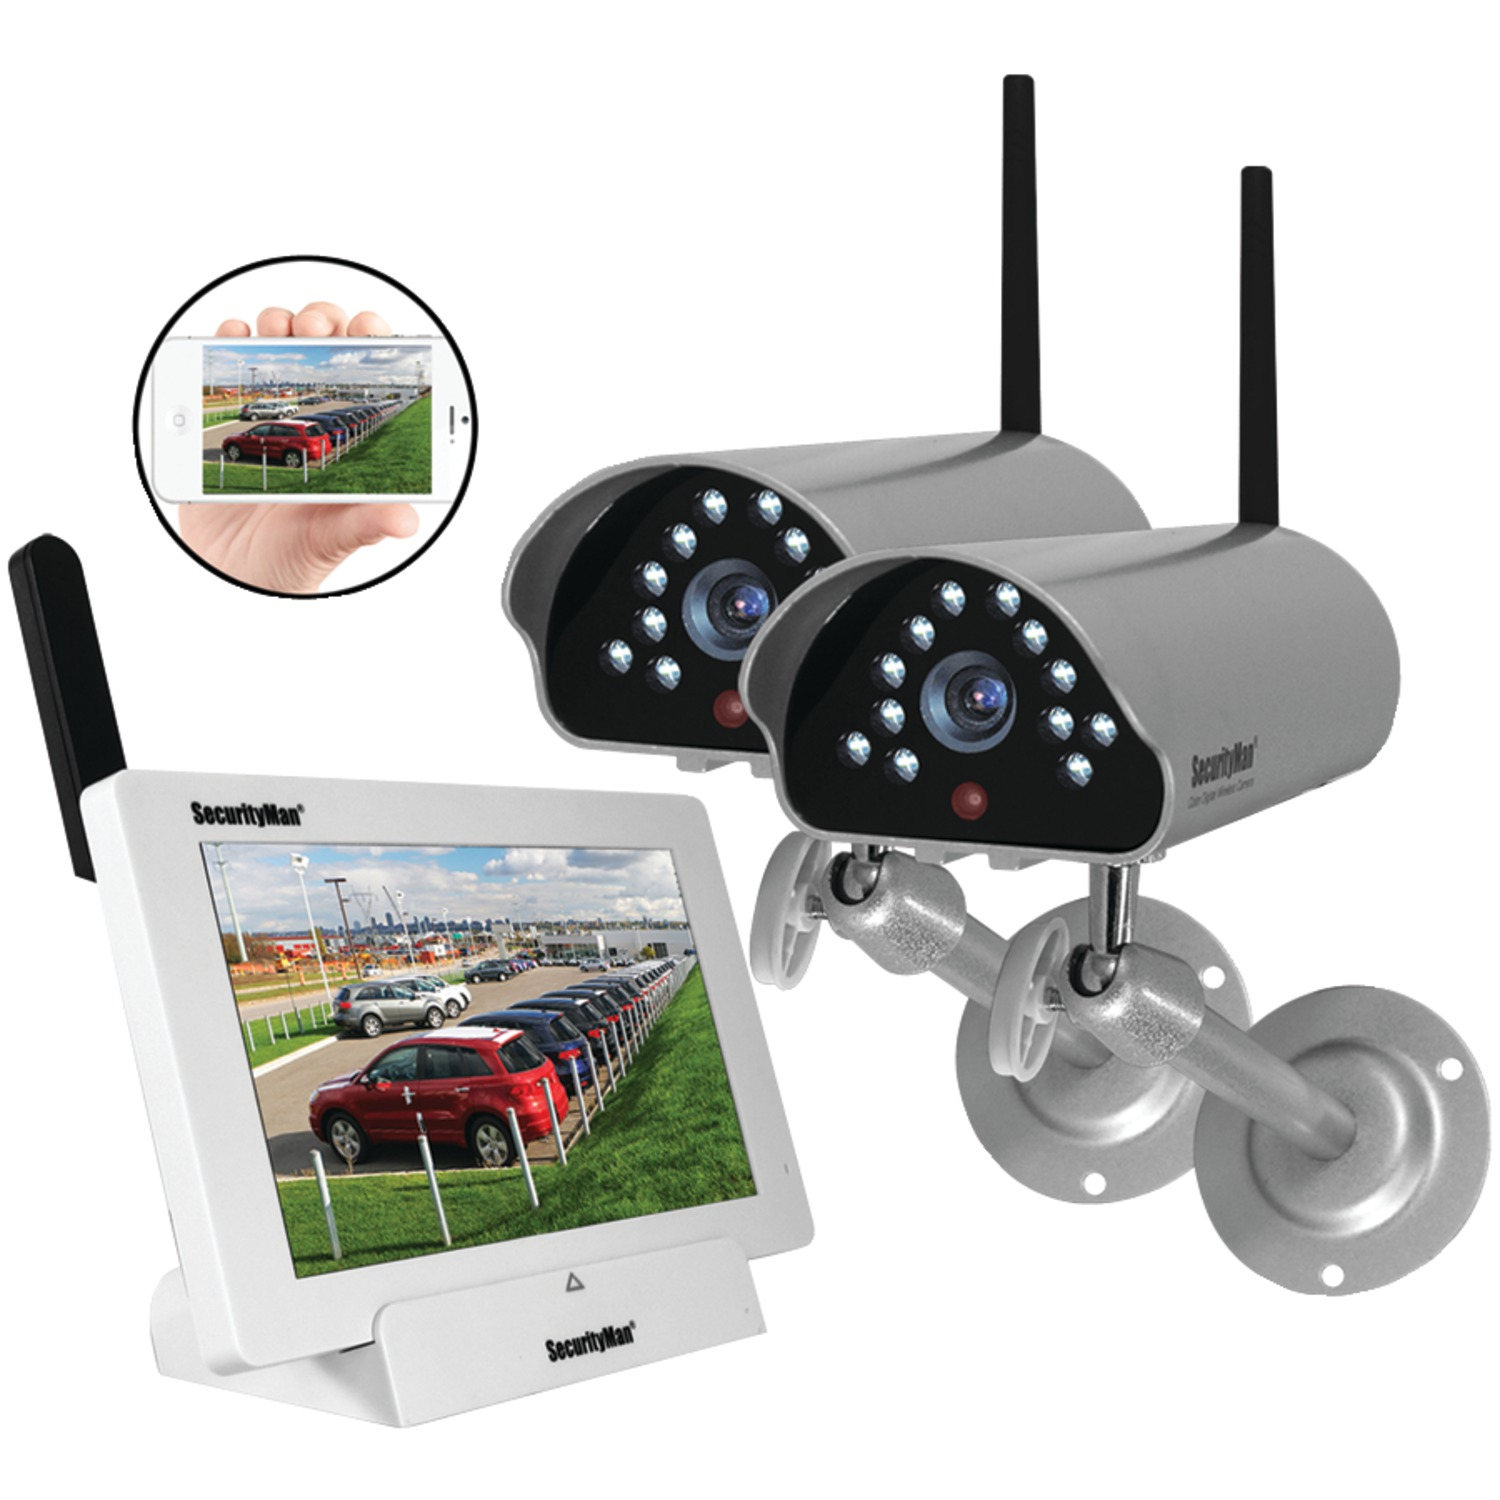 Diy Home Security Cameras Reviews Securityman Digilcdndvr2 Indoor Outdoor Isecurity